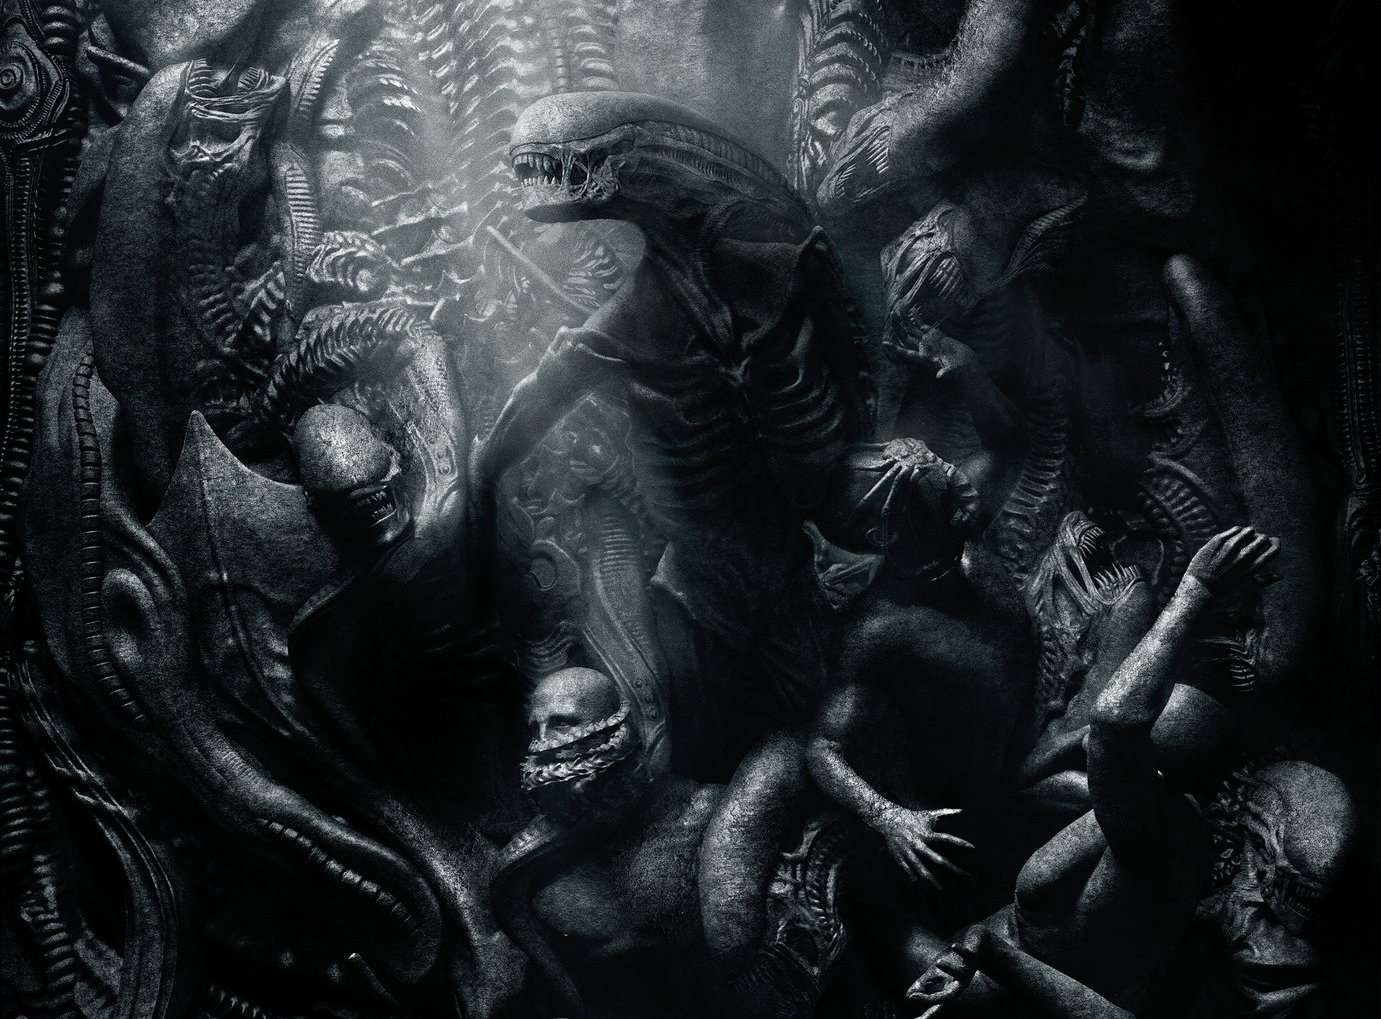 xalien-covenant-fill.jpg.pagespeed.ic_.rPyCbS72Kx1 Alien: Covenant